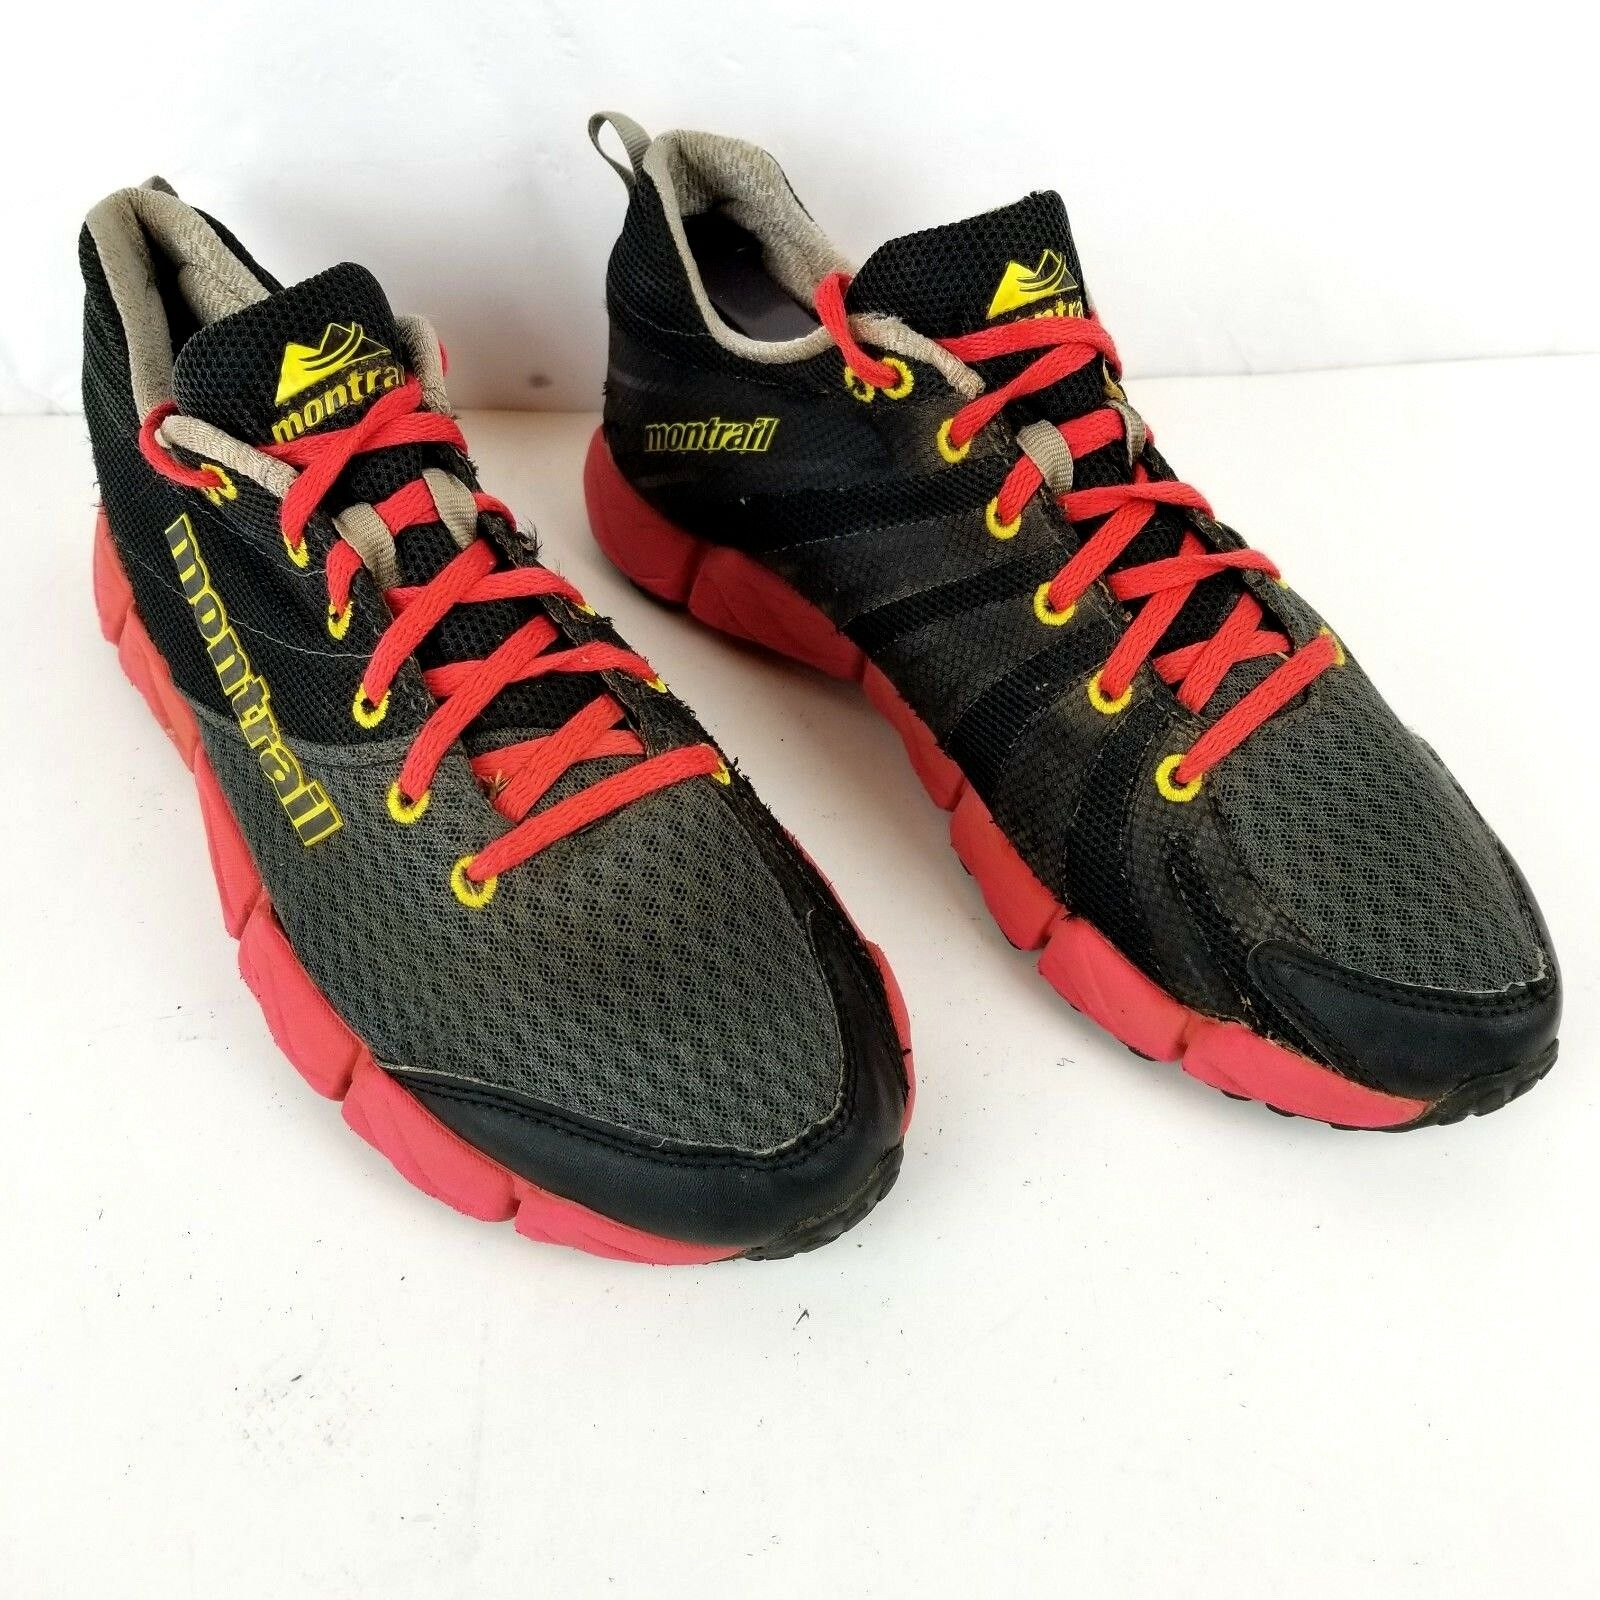 Montrail Womens Sz 9 Fluid Flex II Black Red Trail Running Shoes GL2157028